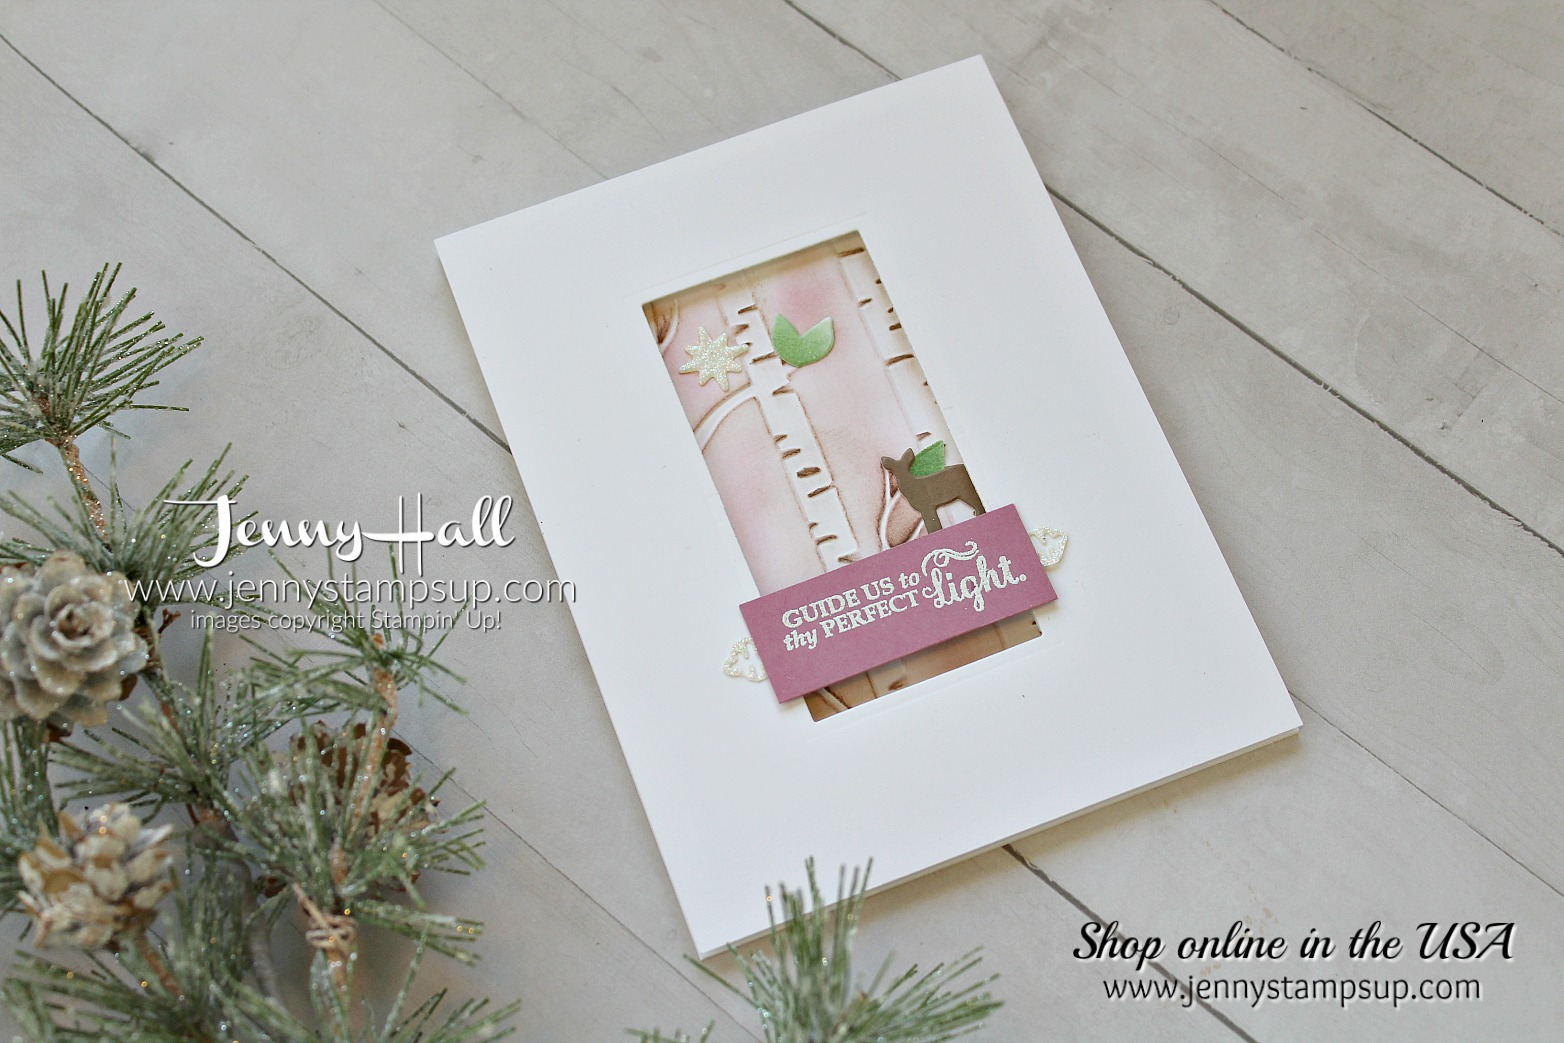 Clean and Simple Christmas card by Jenny Hall using #stampinup products with #videotutorial Find me at www.jennystampsup.com for #cardmaking #scrapbooking #processvideo #papercrafts and #handmade #artsandcrafts